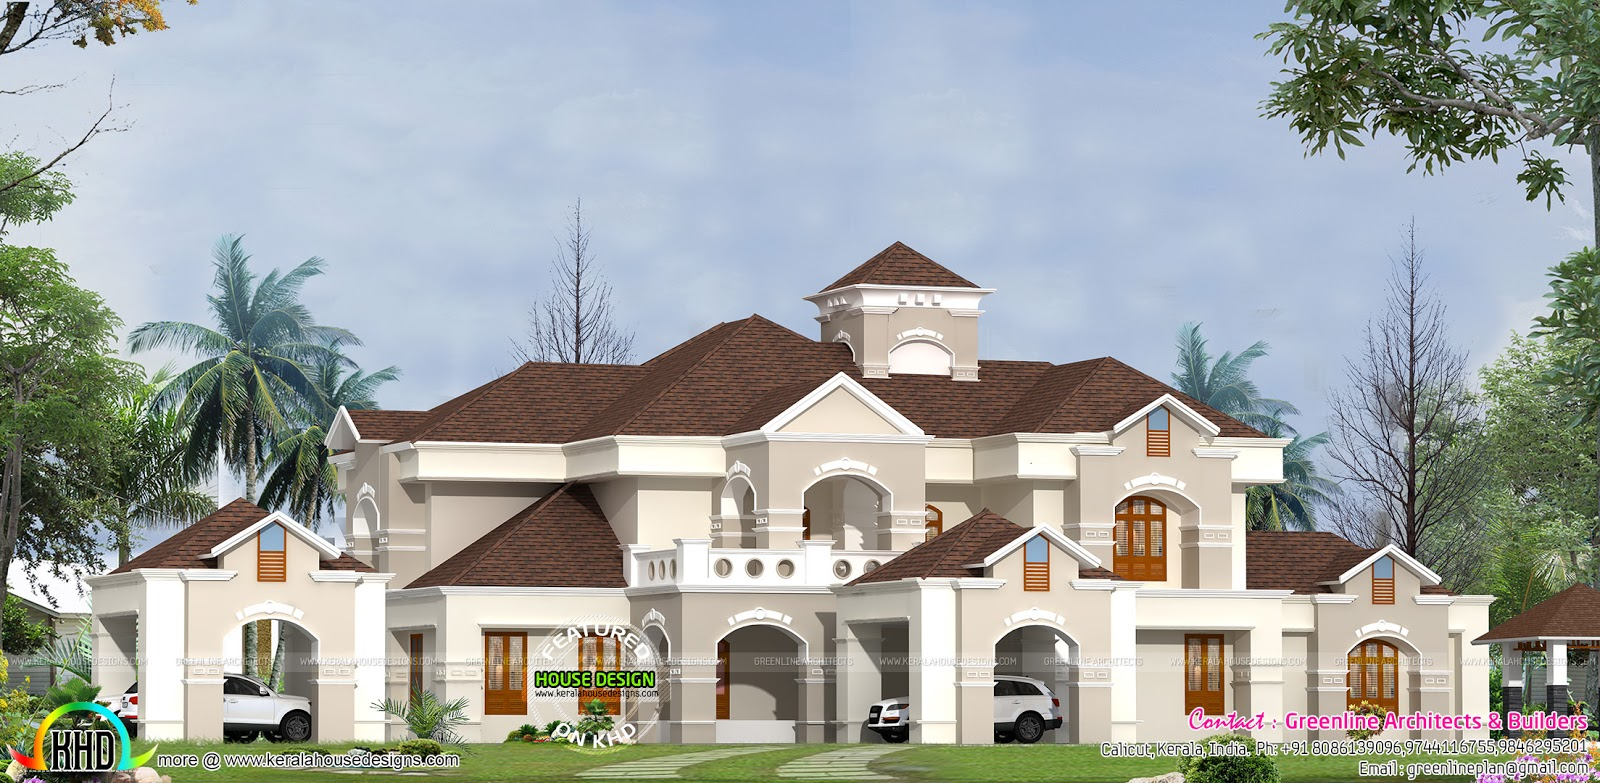 Super luxury villa design in kerala kerala home design for Kerala style villa plans